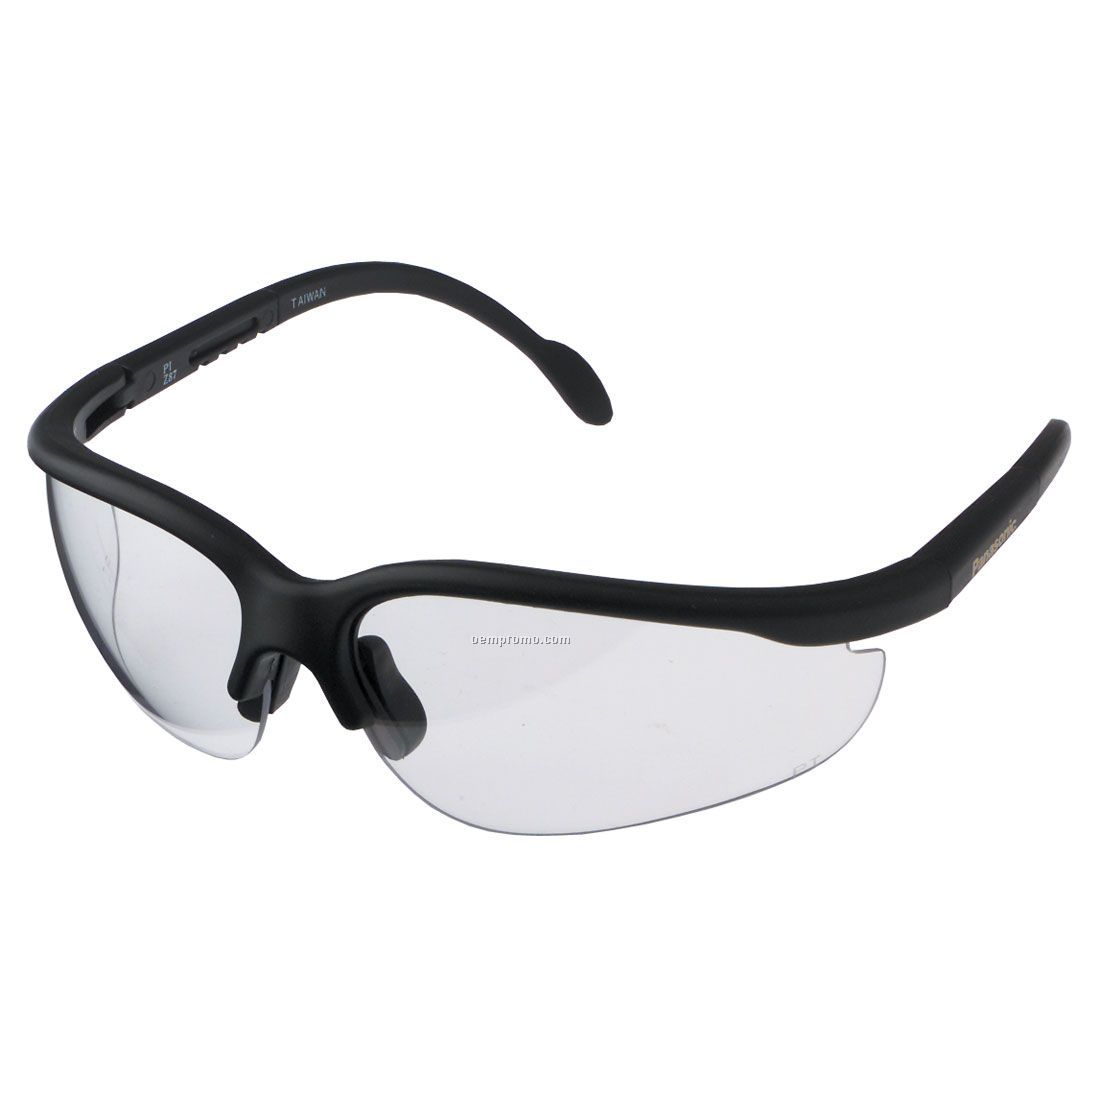 Protective Sports Eyewear - SafetyGlassesUSA.com - Safety Glasses